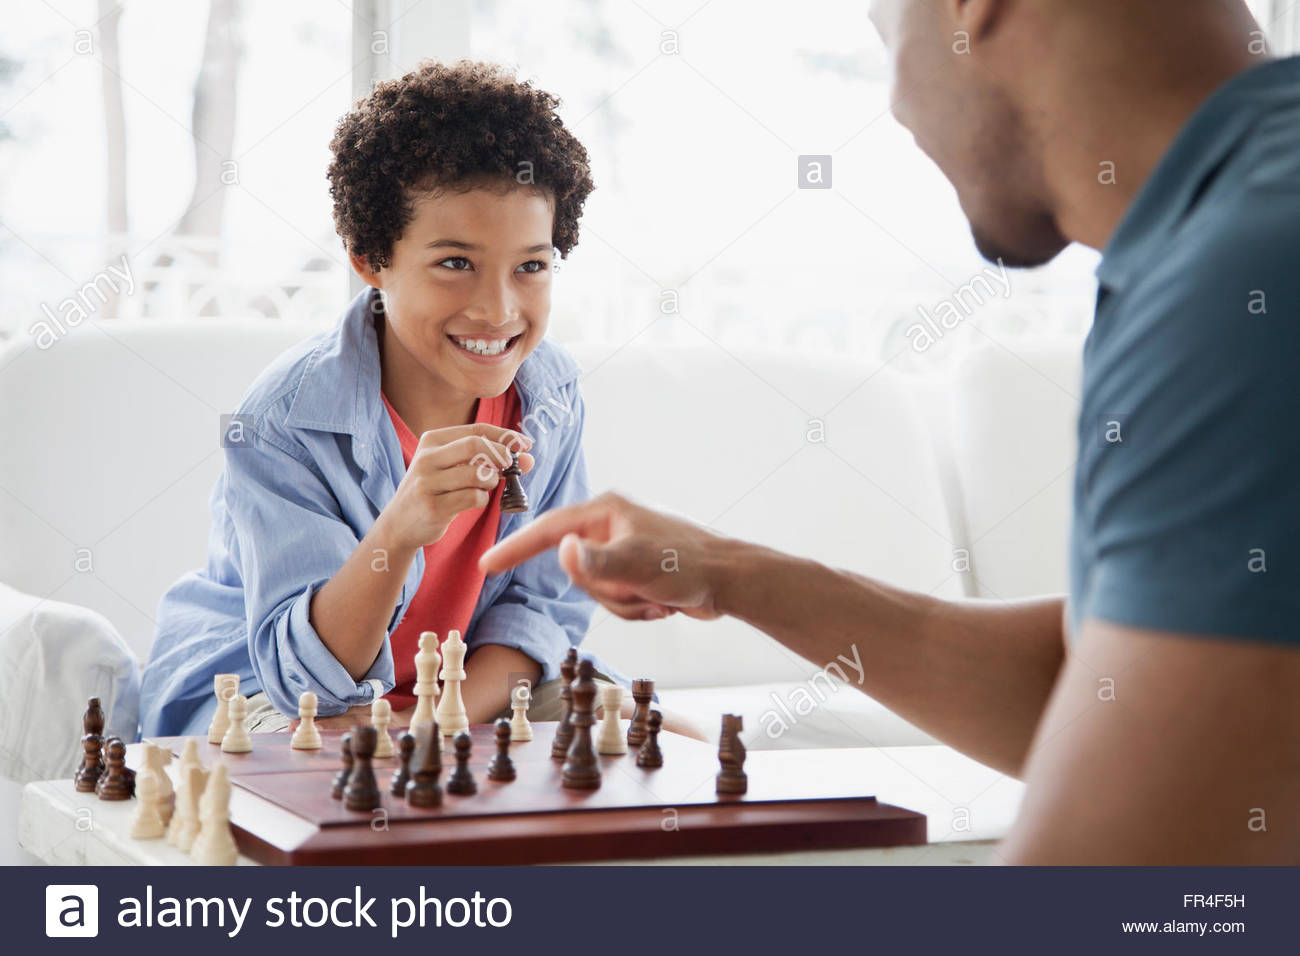 father and son challenging each other in a chess game - Stock Image